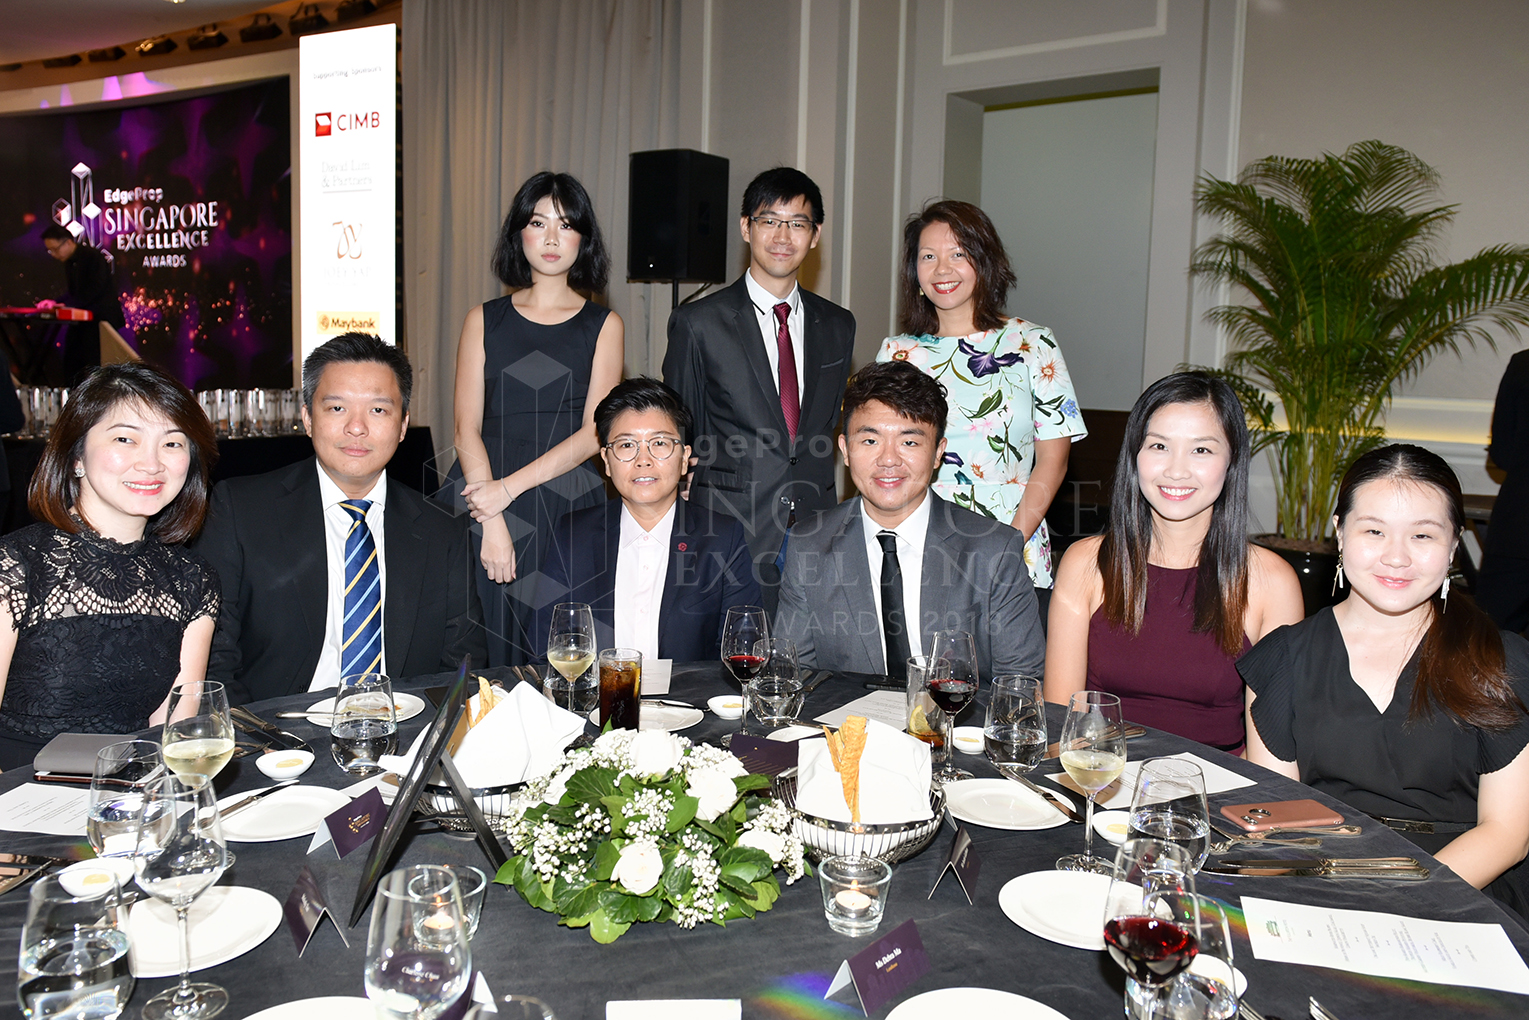 LEI_EDGEPROP_EXCELLENCE_AWARDS_2018_TABLES_02_AC.jpg